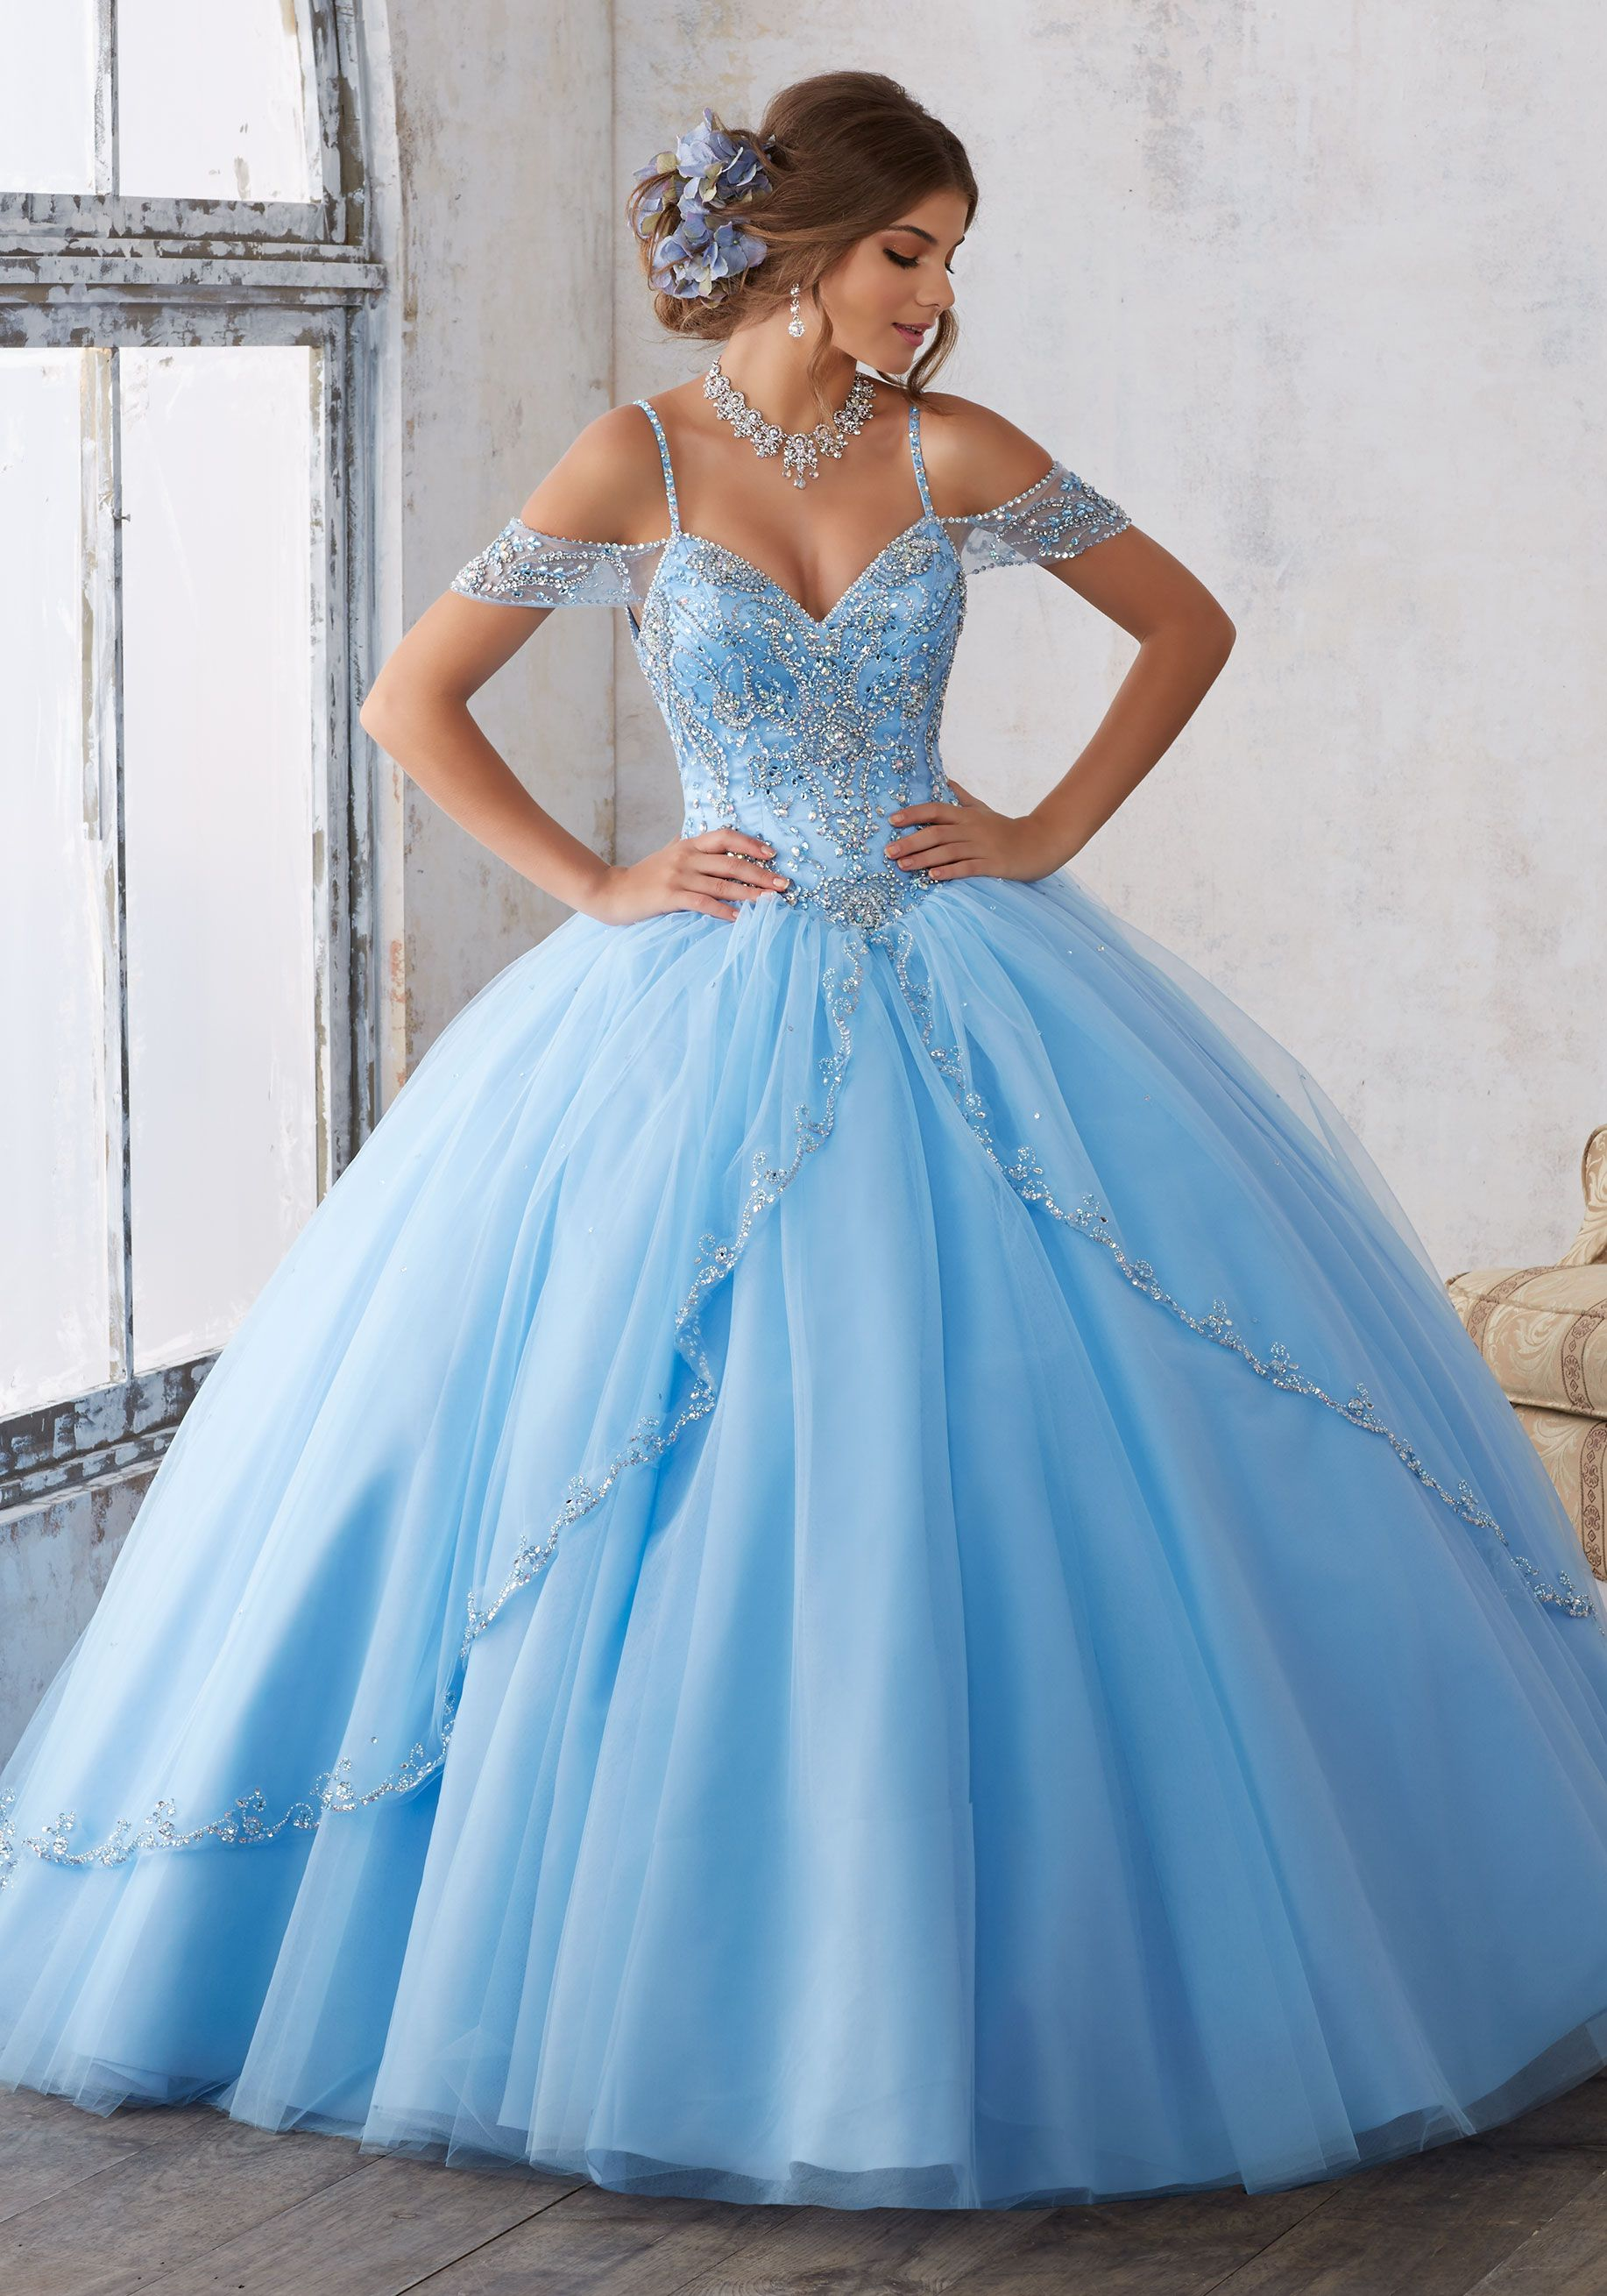 Jeweled beading on a split front tulle ballgown kates quince